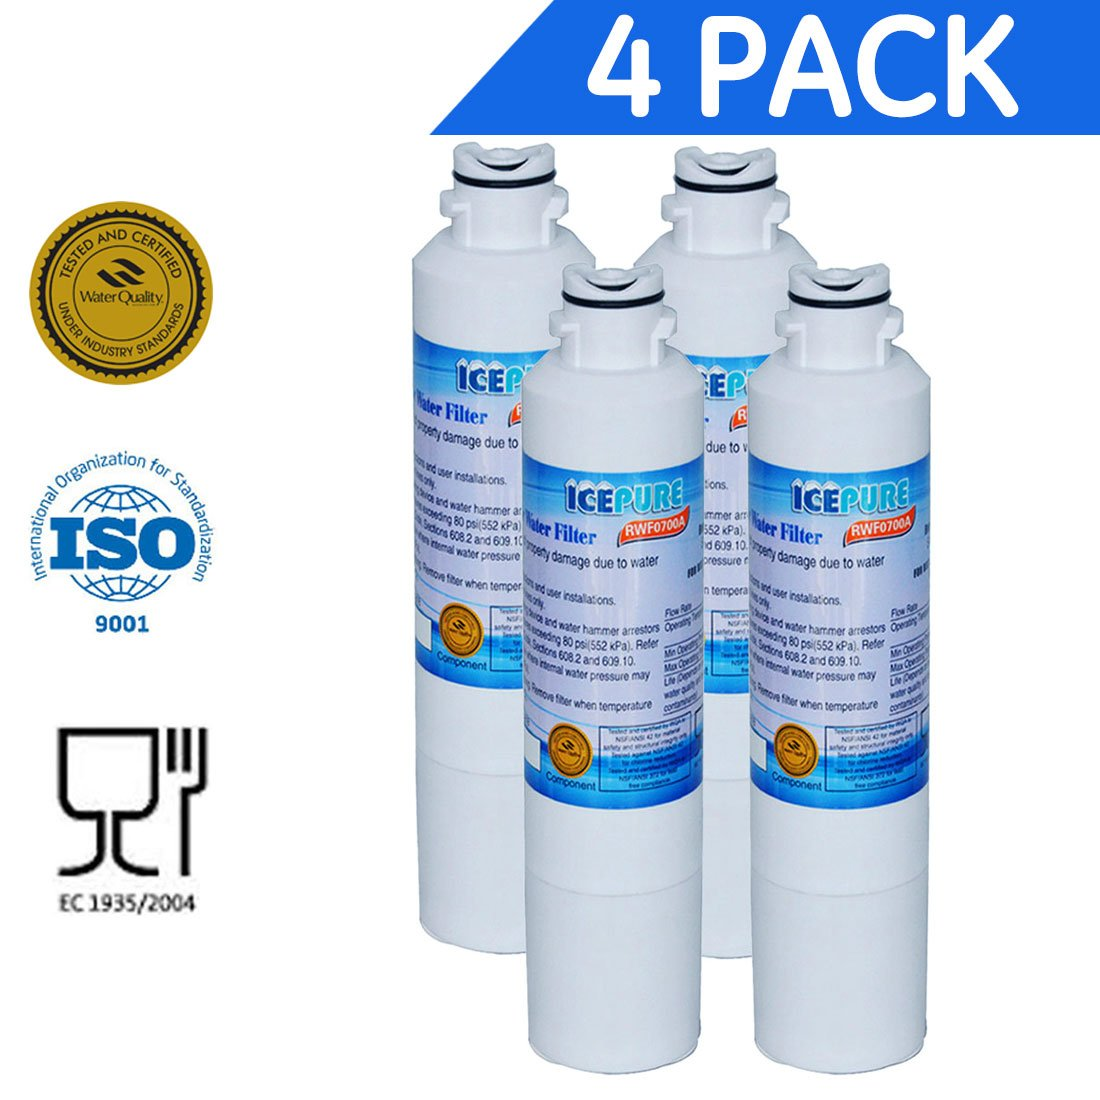 Icepure RWF0700A 4PACK Refrigerator Water Filter Compatible with Samsung DA2900020B, DA2900020A